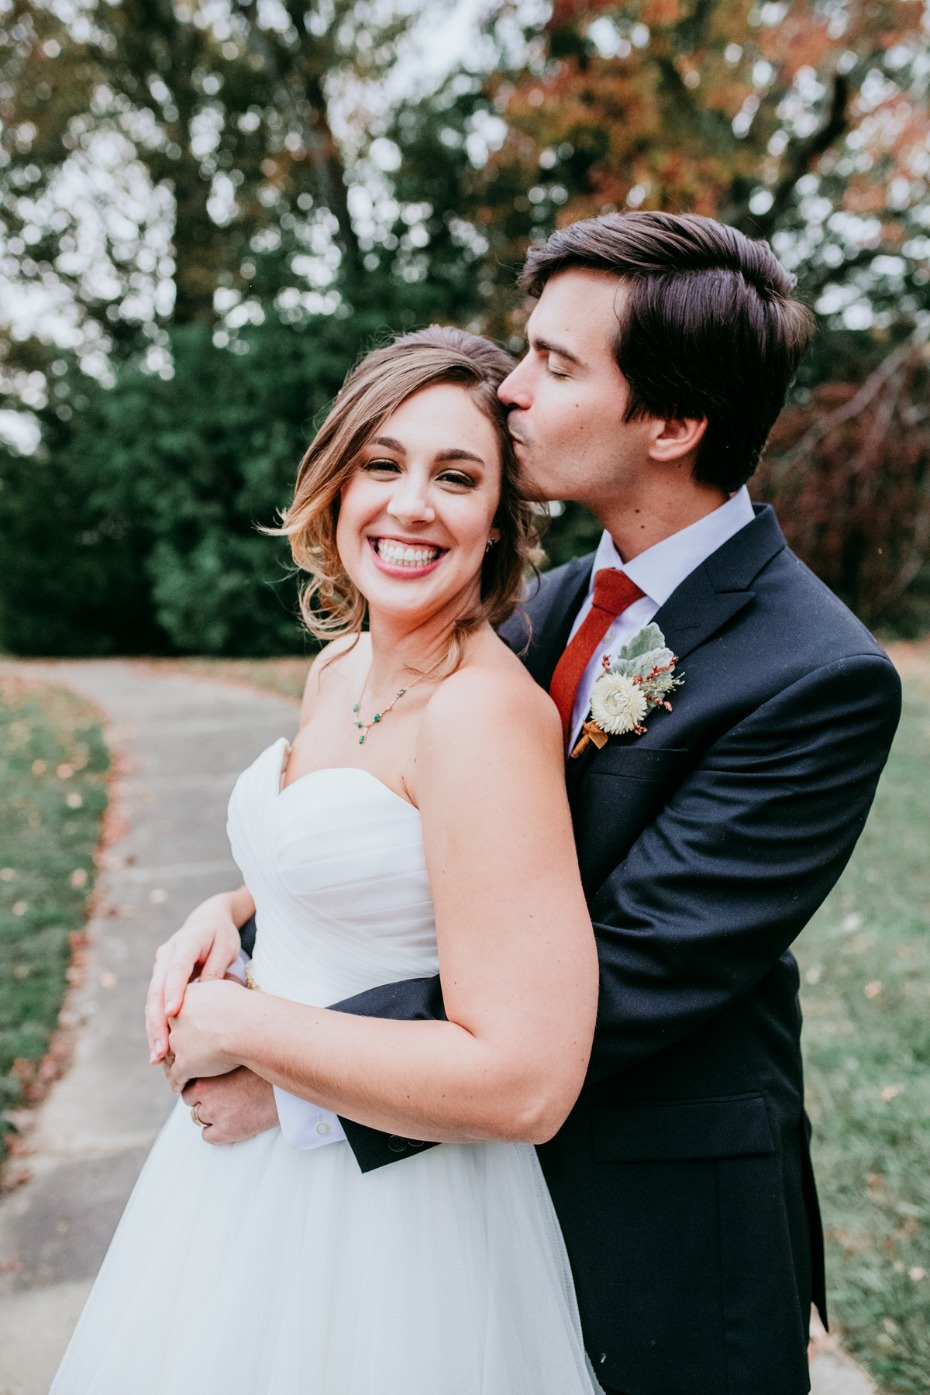 Autumn brunch-inspired wedding